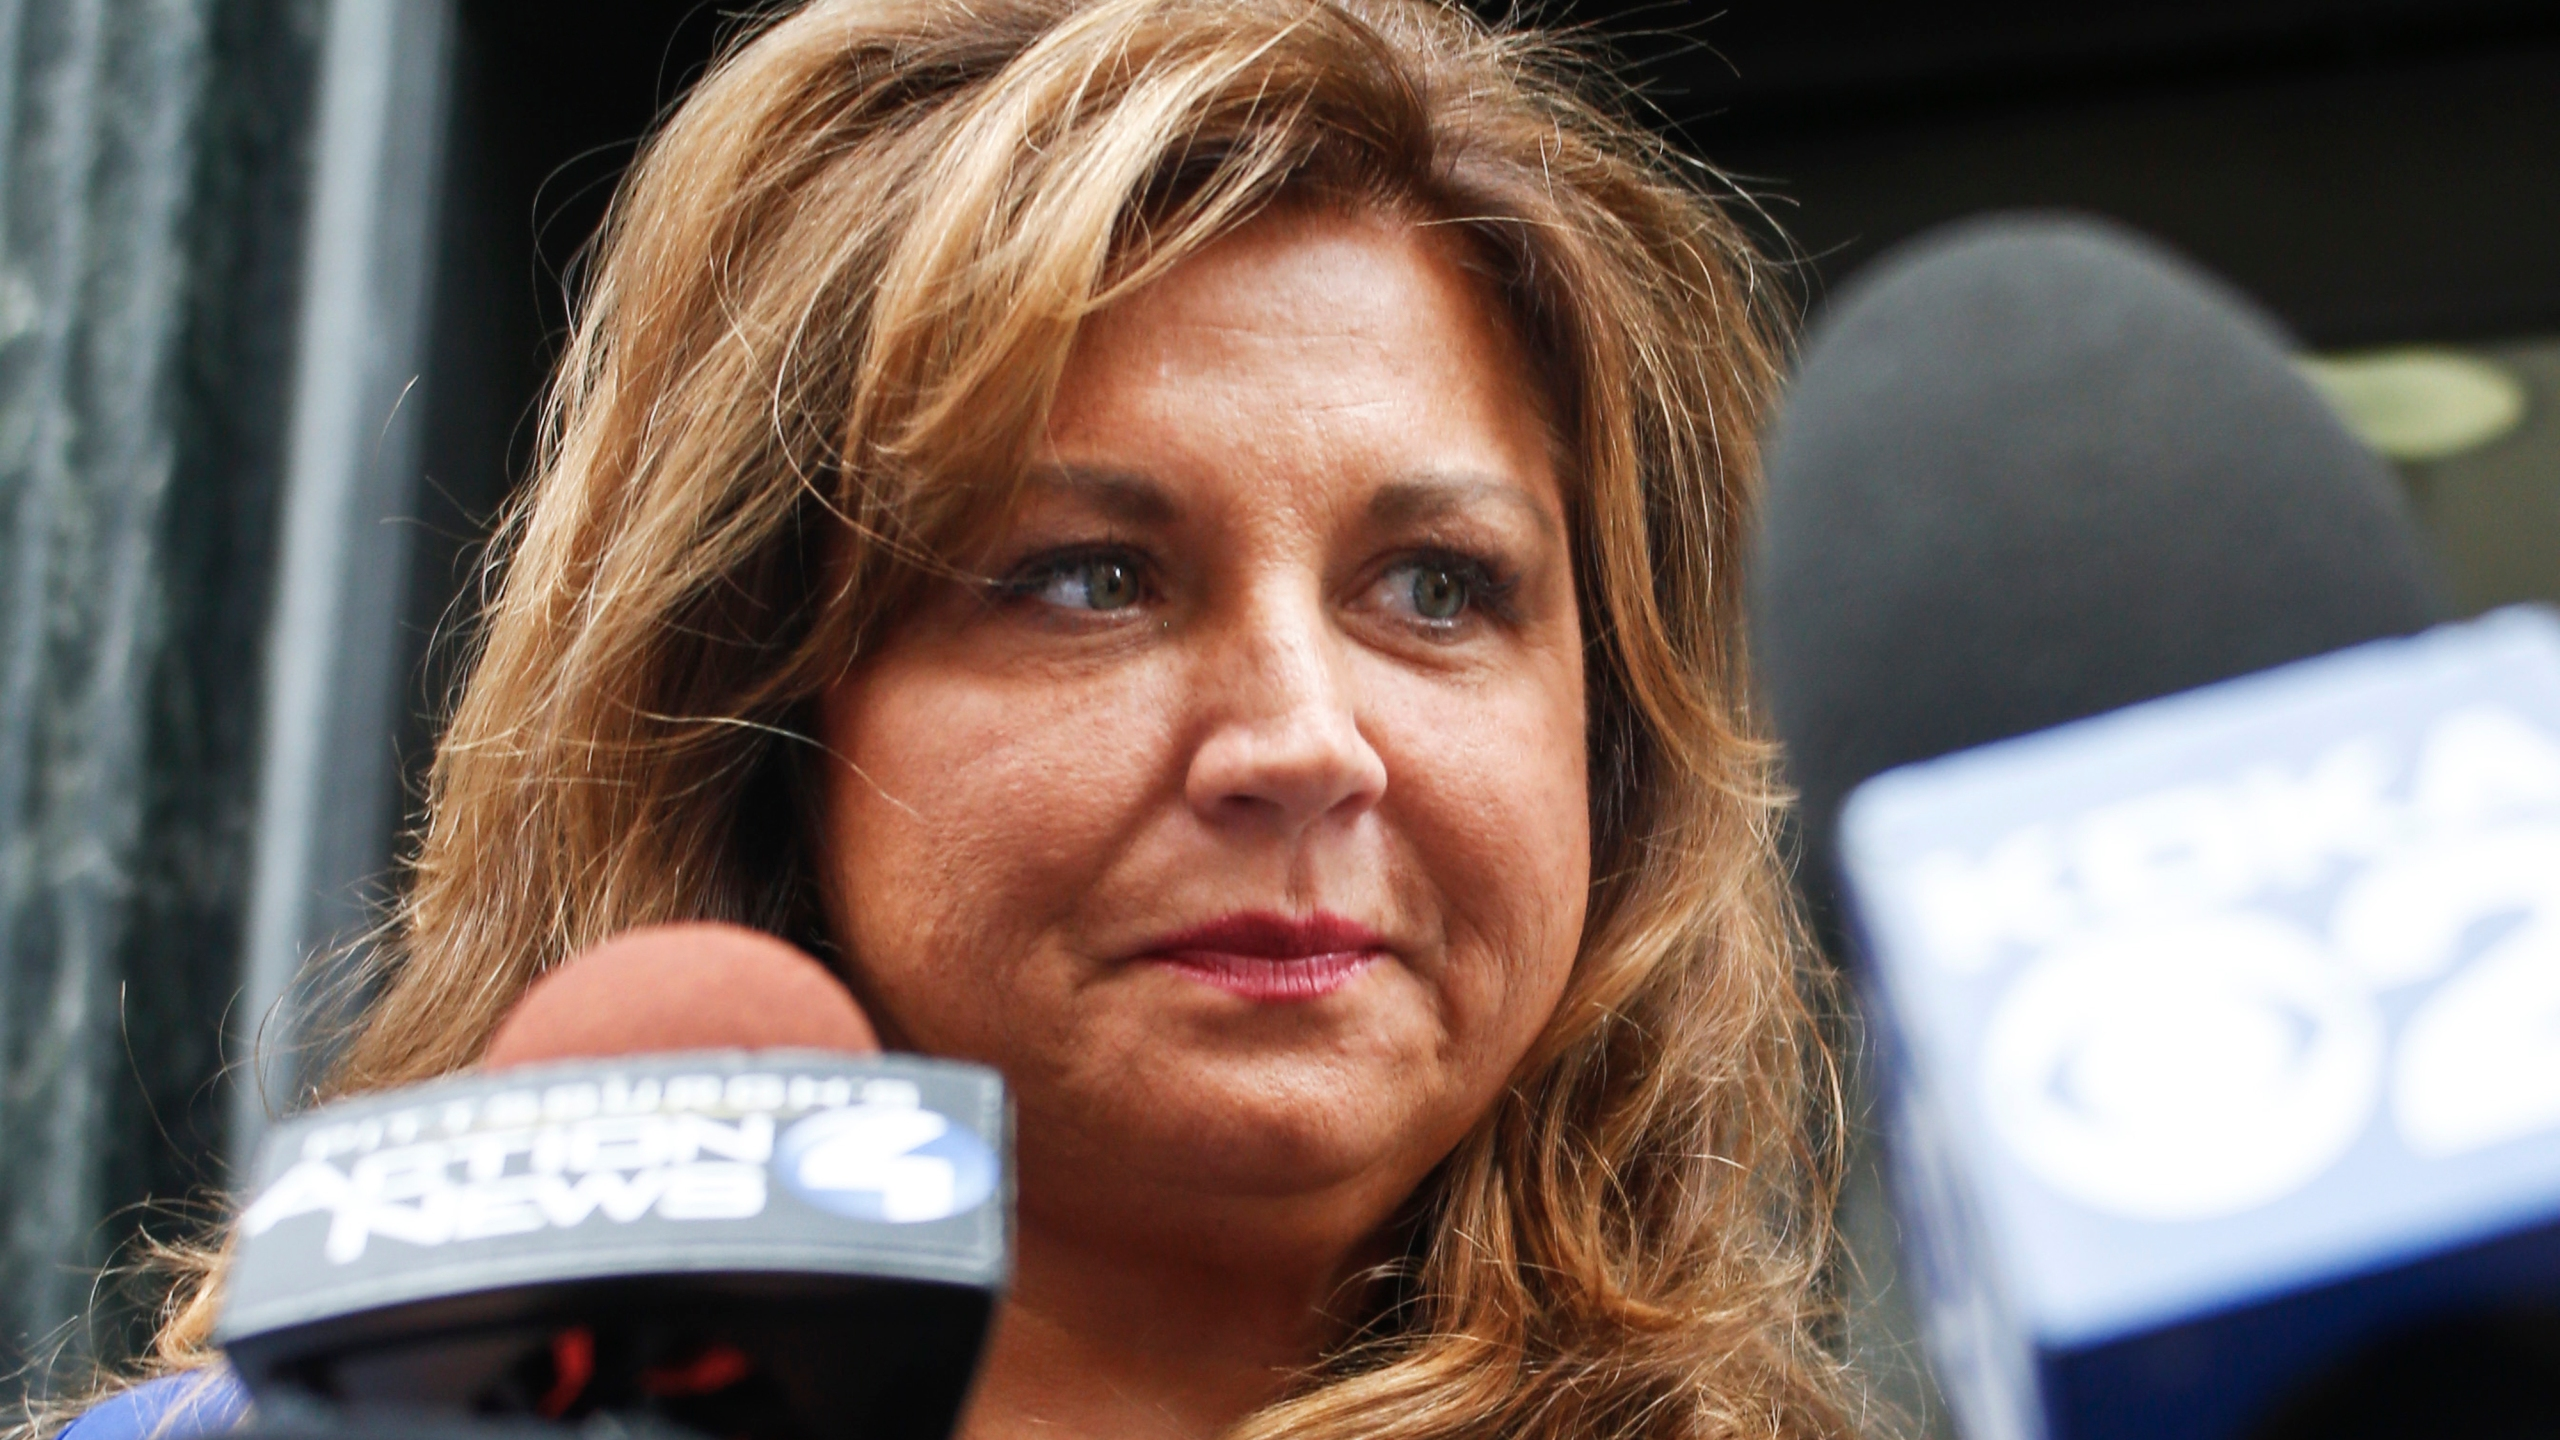 Dance Moms-Bankruptcy Fraud Photo by Keith Srakocic, AP Photo_289823